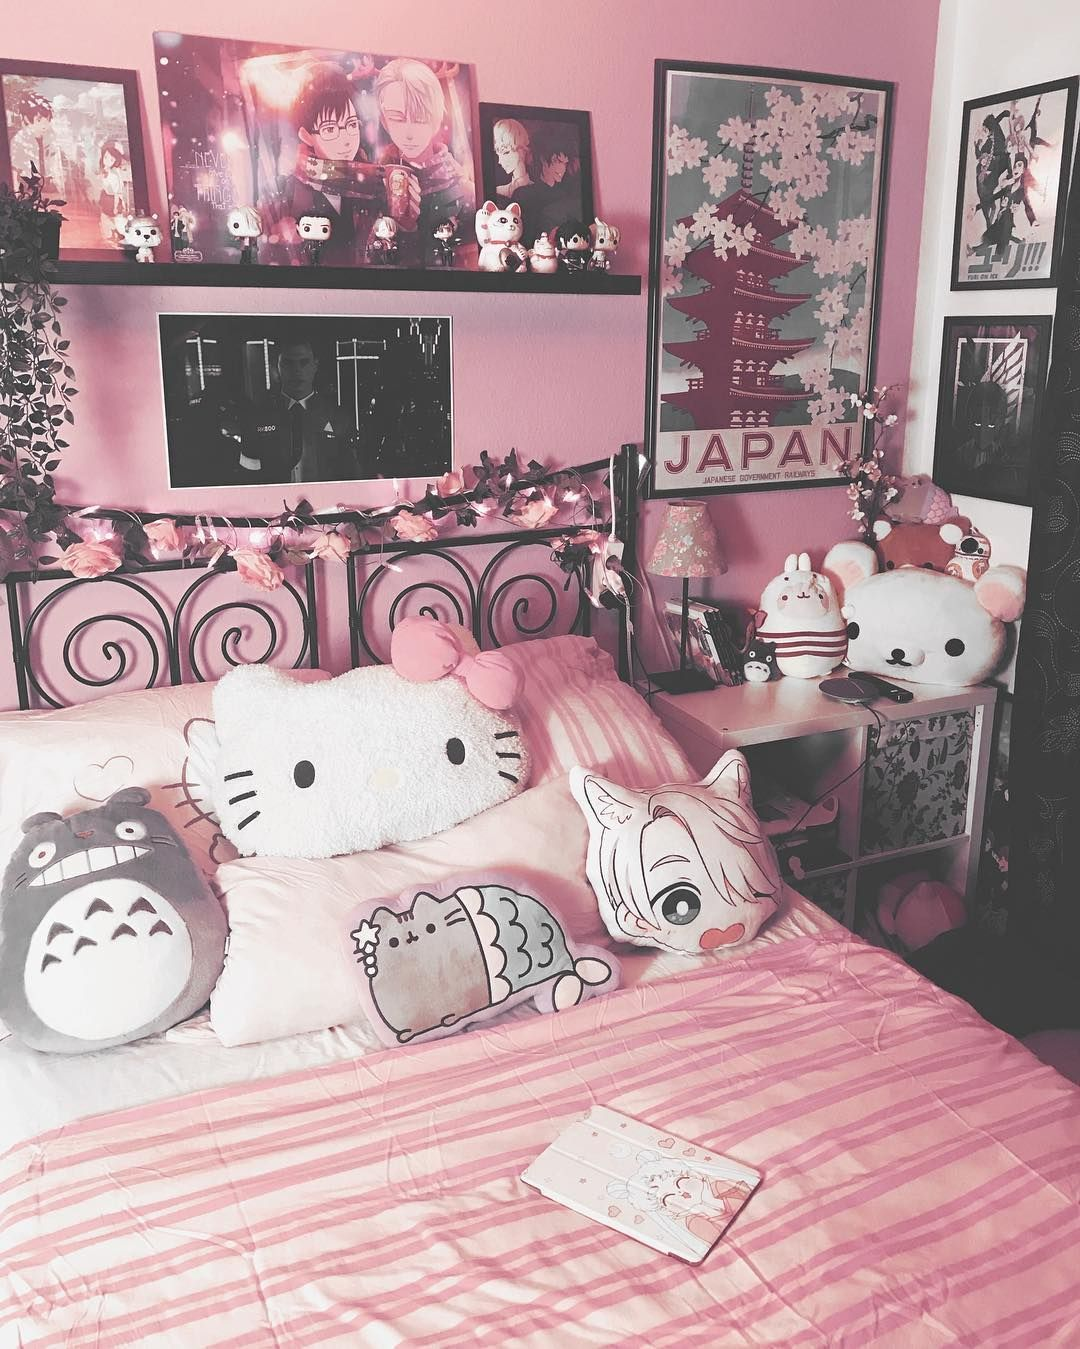 Geek Bedroom Girl Geek Bedroom In 2020 Cute Room Decor Room Ideas Bedroom Cute Room Ideas